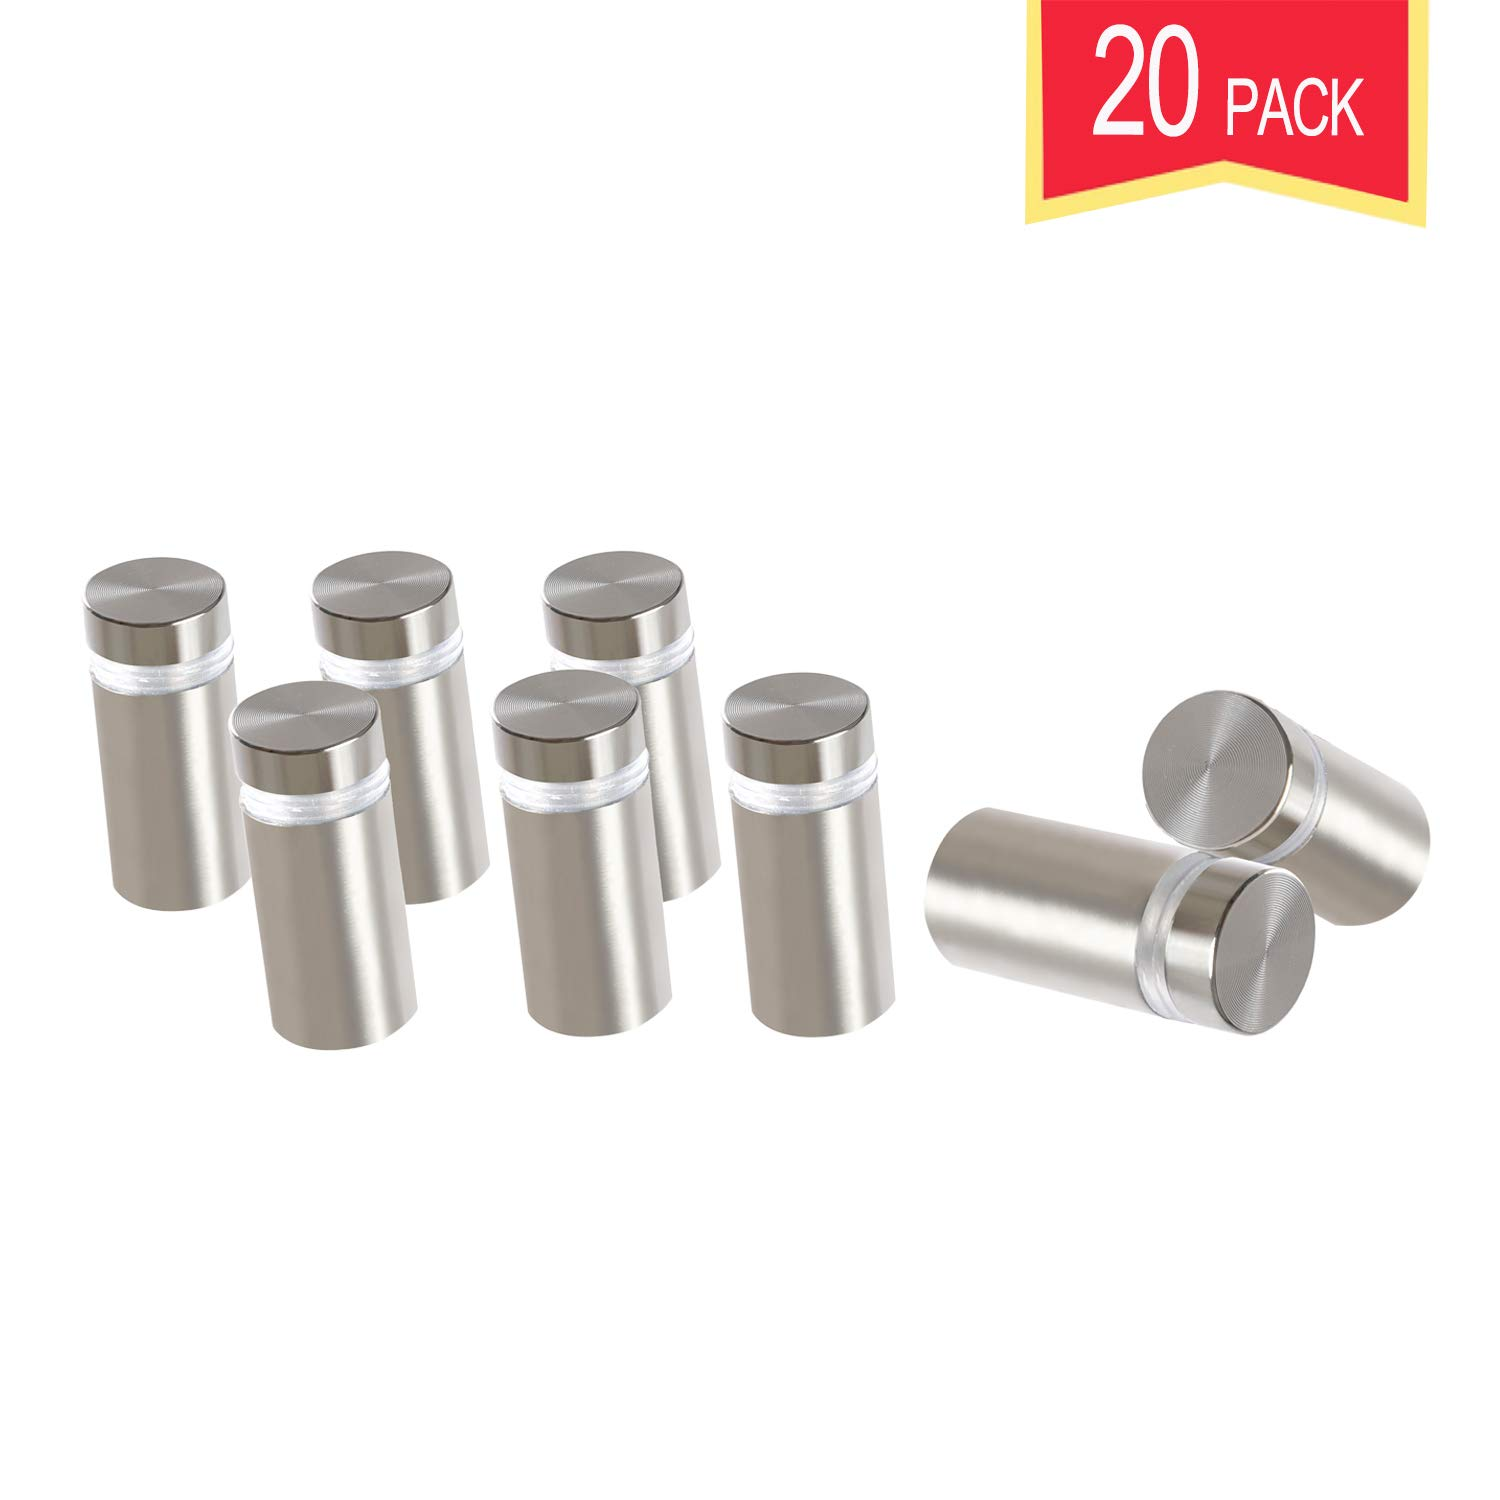 Standoff Screws for Wall Mount Acrylic Picture Frame Hardware 3/4'' x 1'' Aluminum Silver Finish Nails for Acrylic Glass Sign Holder 20 Pcs